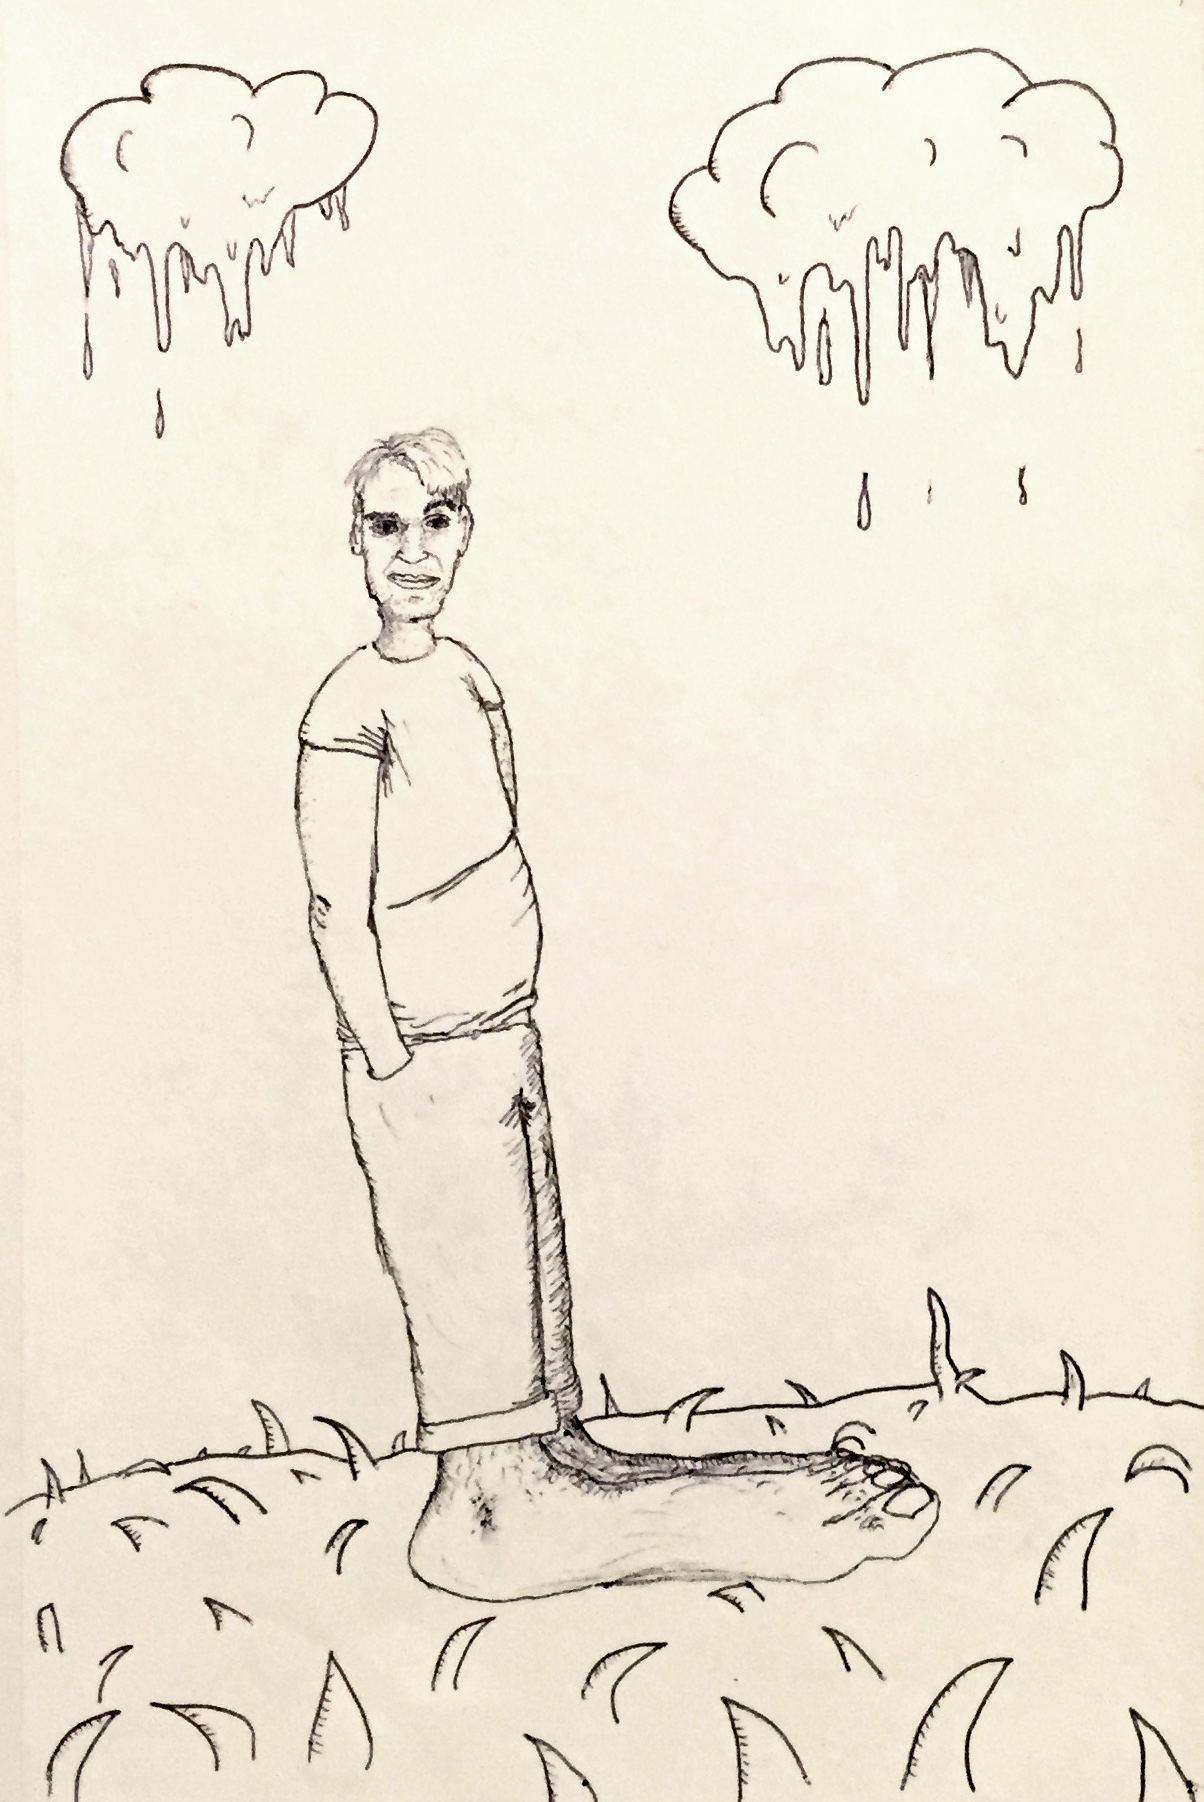 2001 Sketch Self Portrait with big feet.jpg